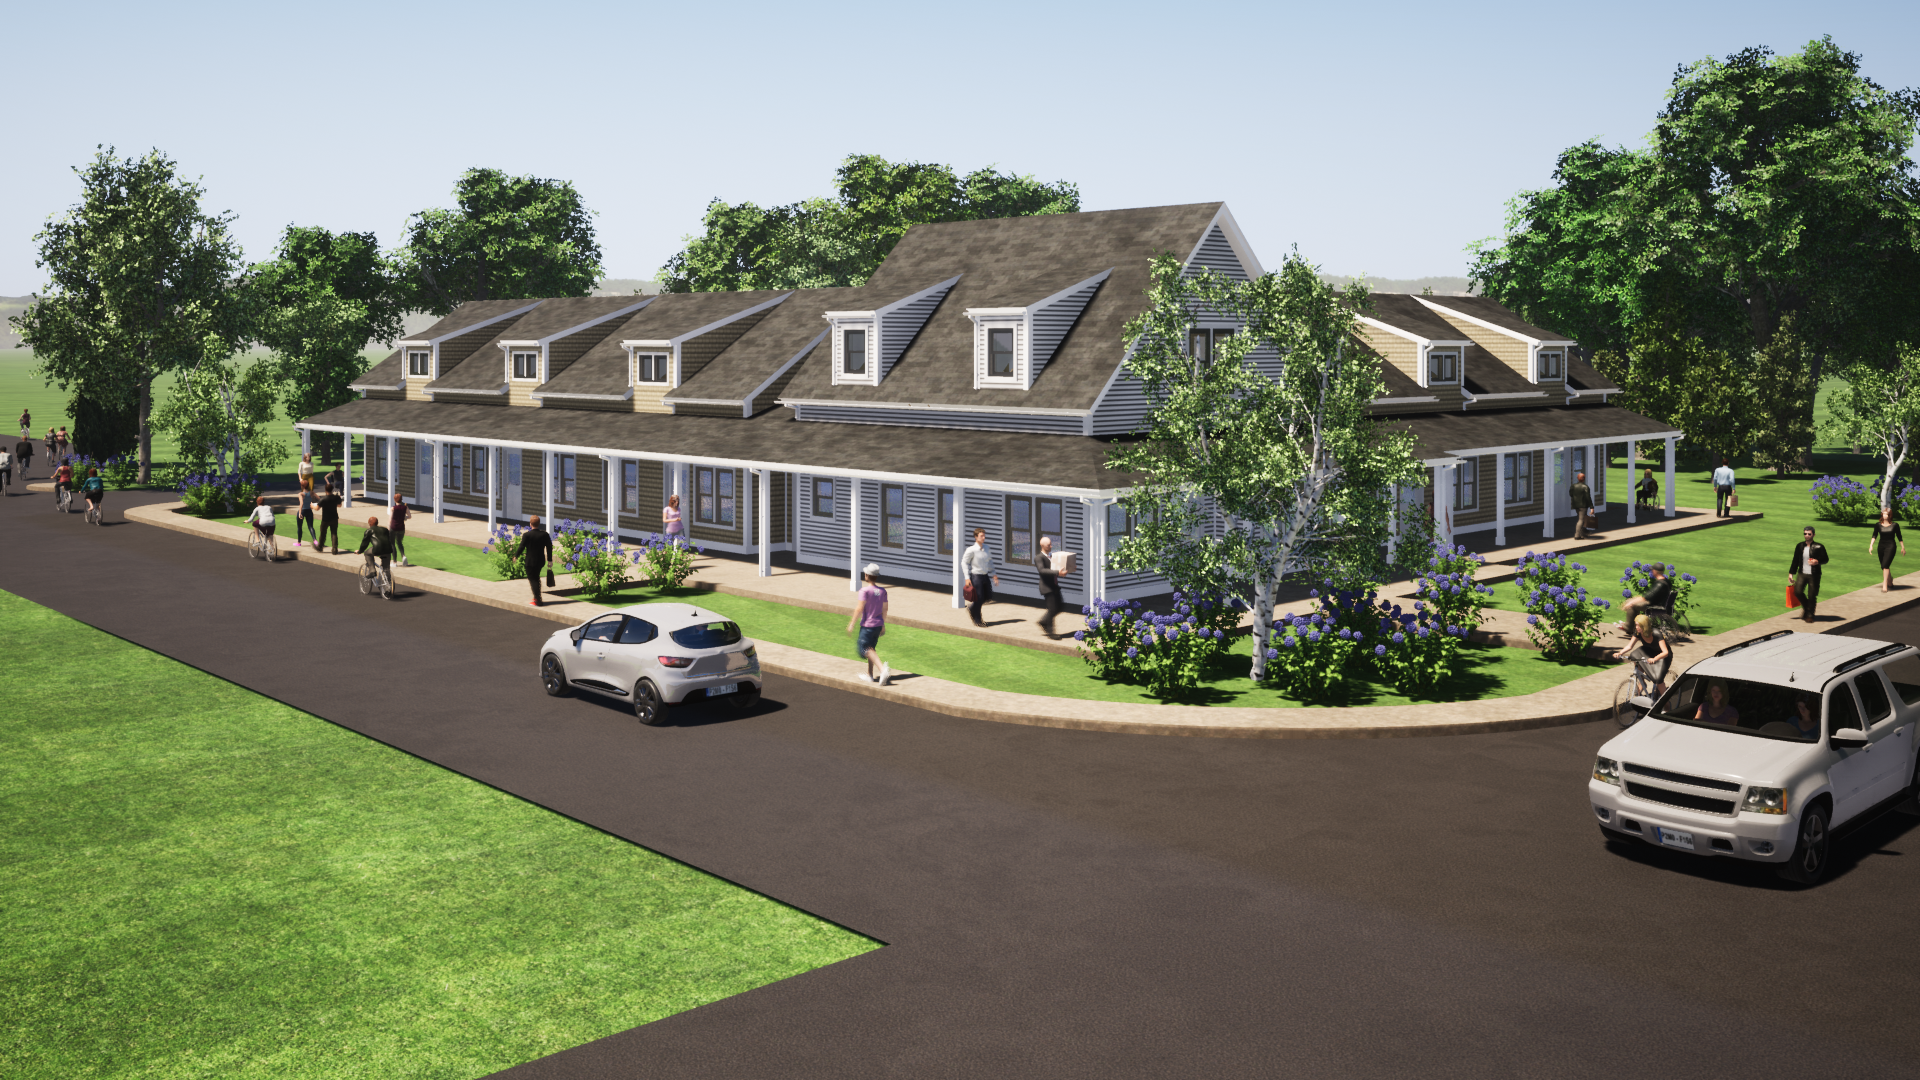 Rendering of a senior living community. A grey house-like building with a street with people walking out front.